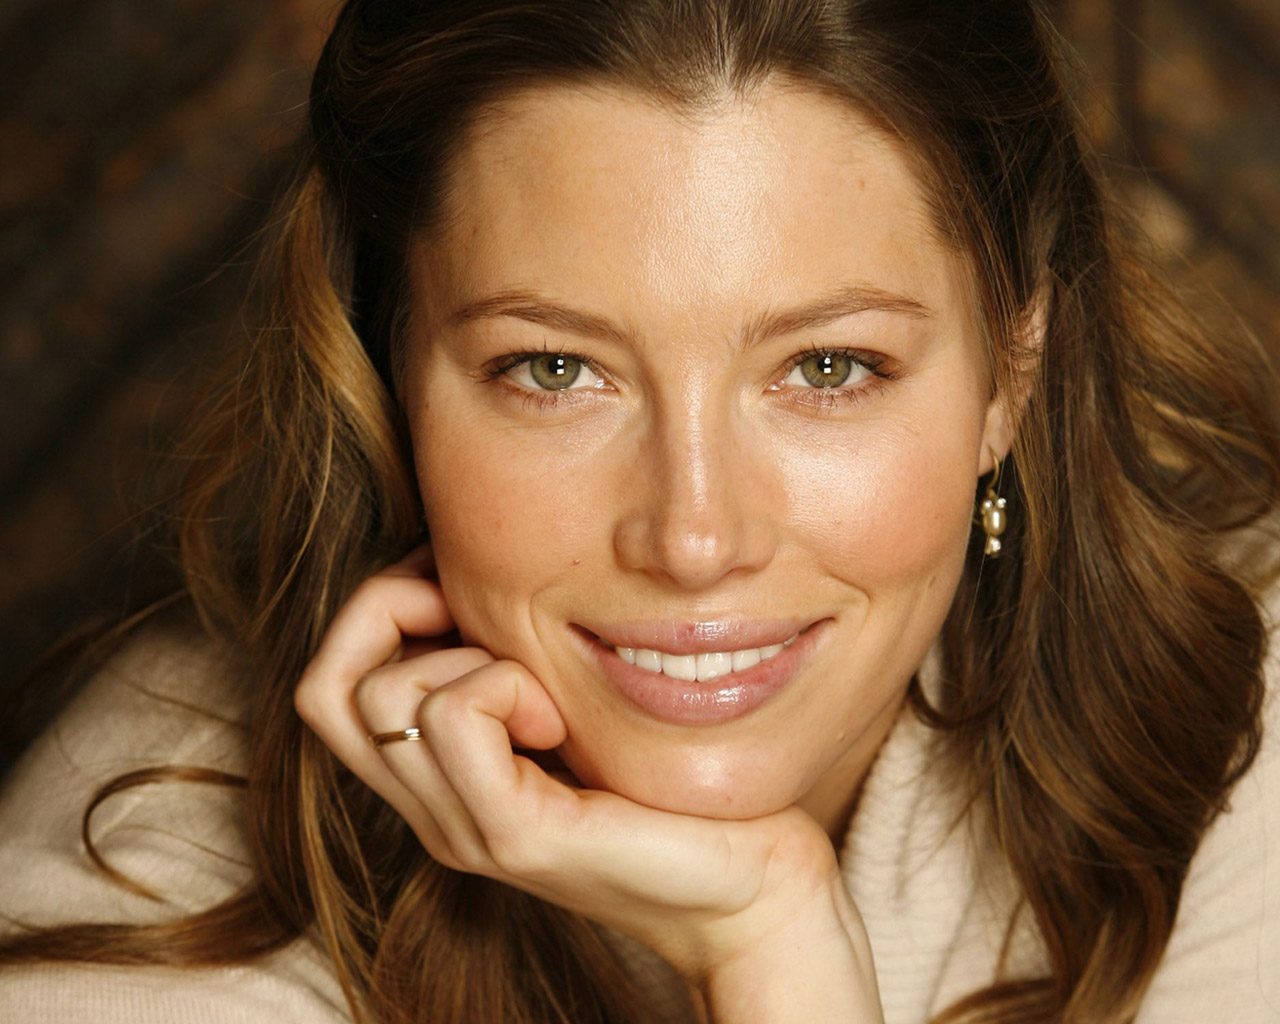 Jessica Biel images Jessica HD wallpaper and background photos (134892 ... Jessica Biel